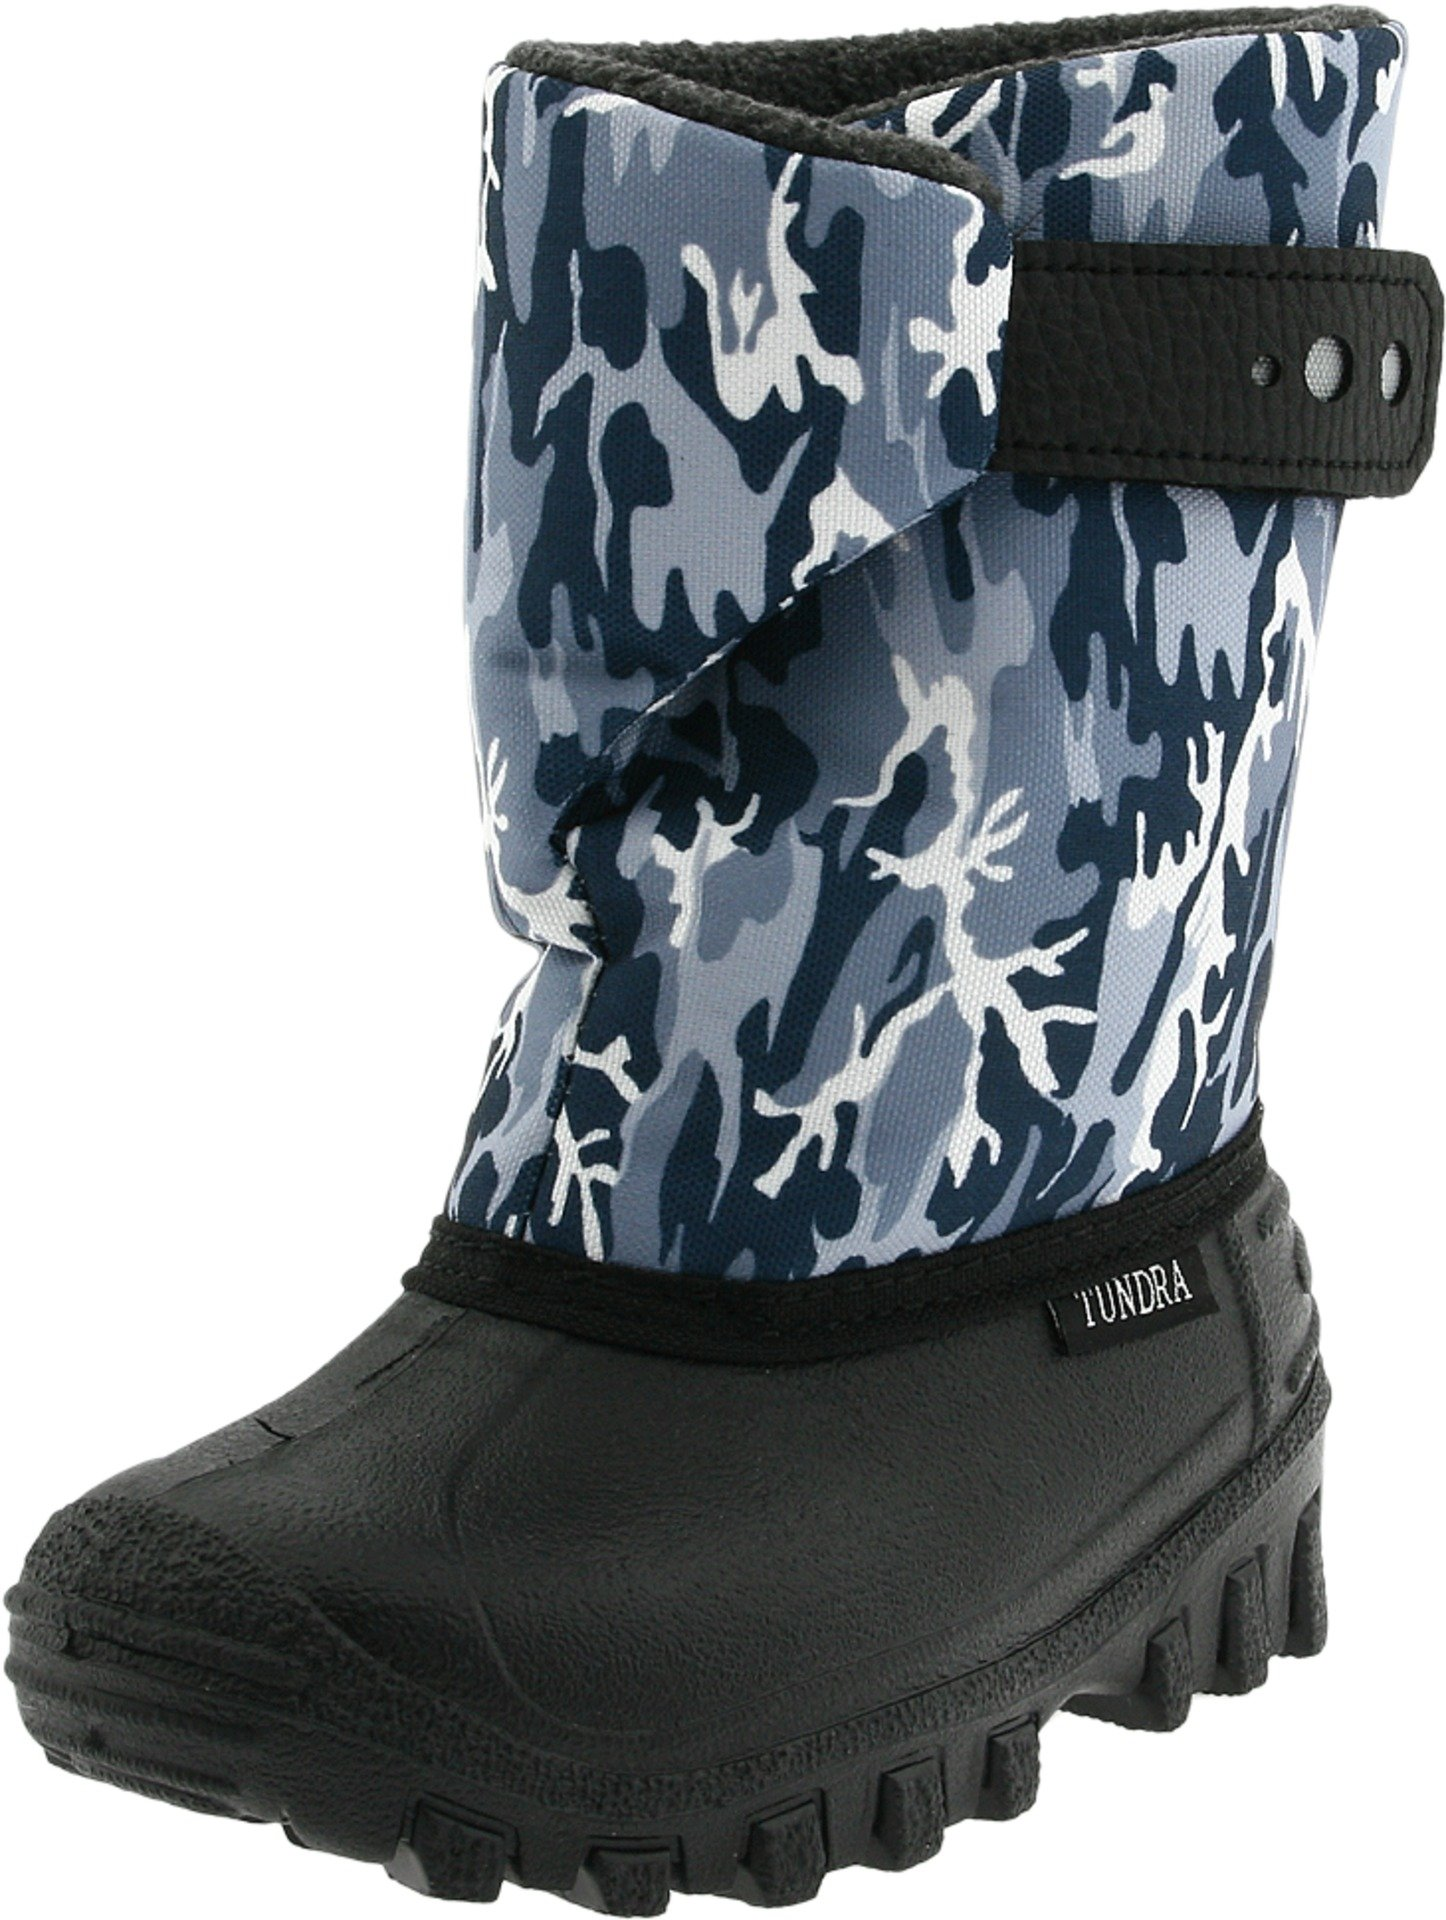 Tundra Teddy 4 Boot (Toddler/Little Kid),Black/Grey Camo,10 M US Toddler